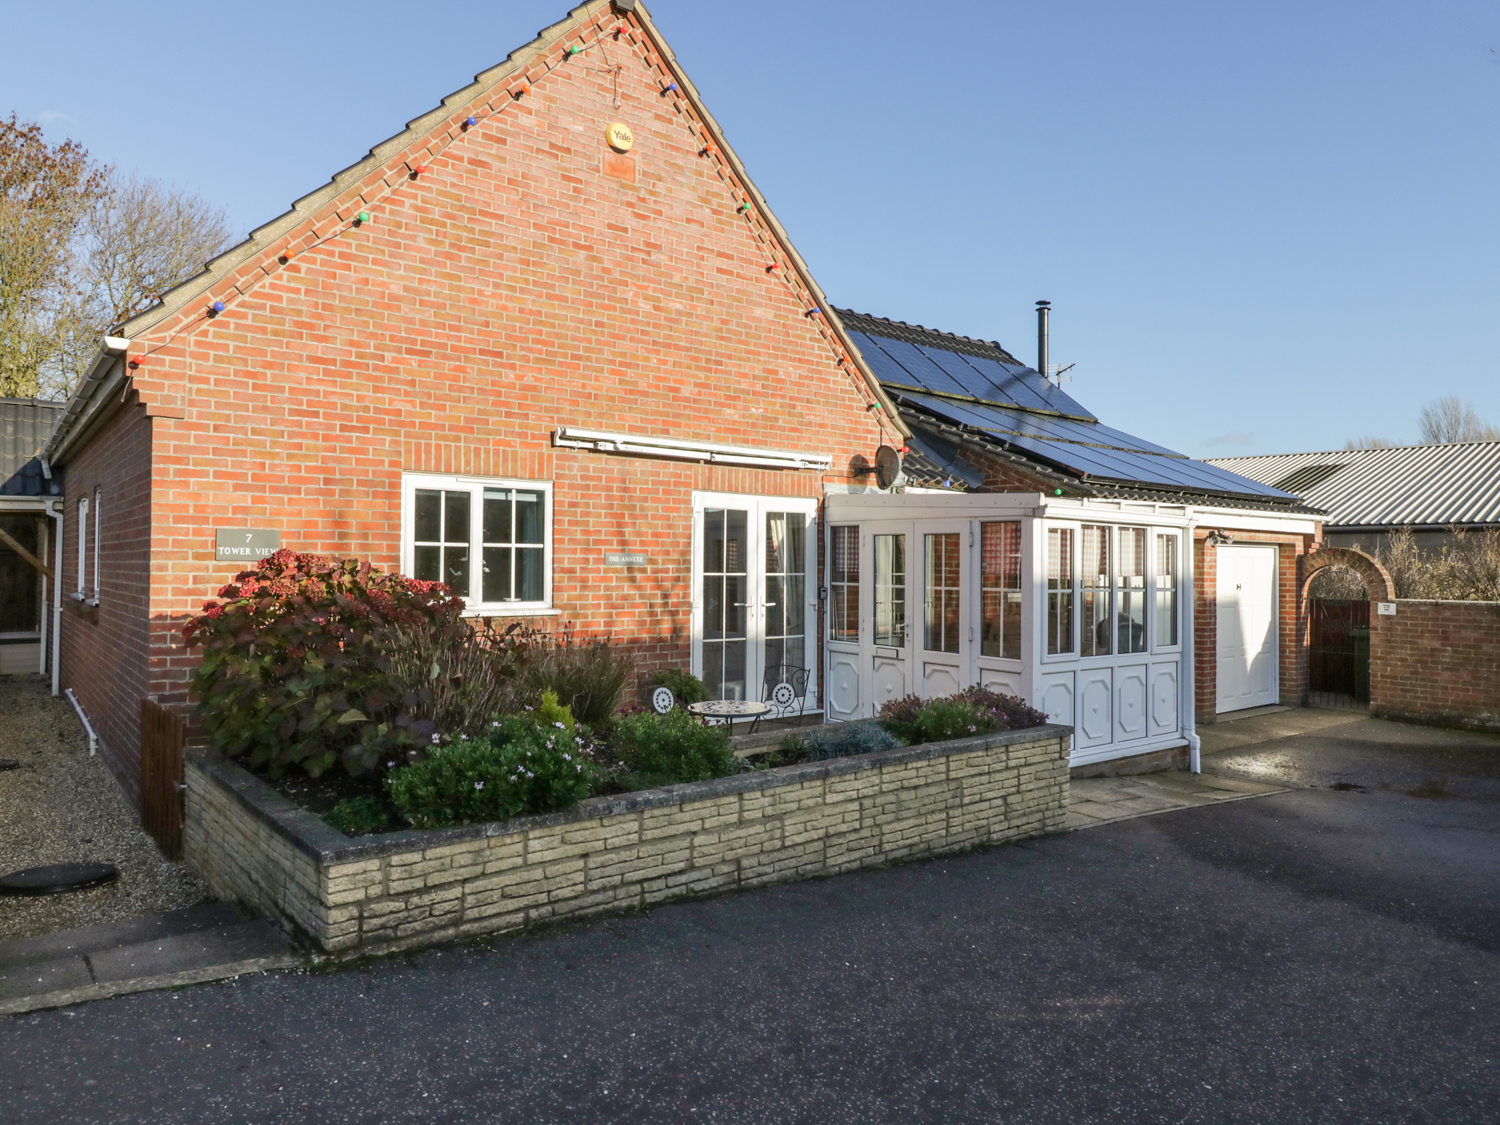 1 bedroom Cottage for rent in Norwich